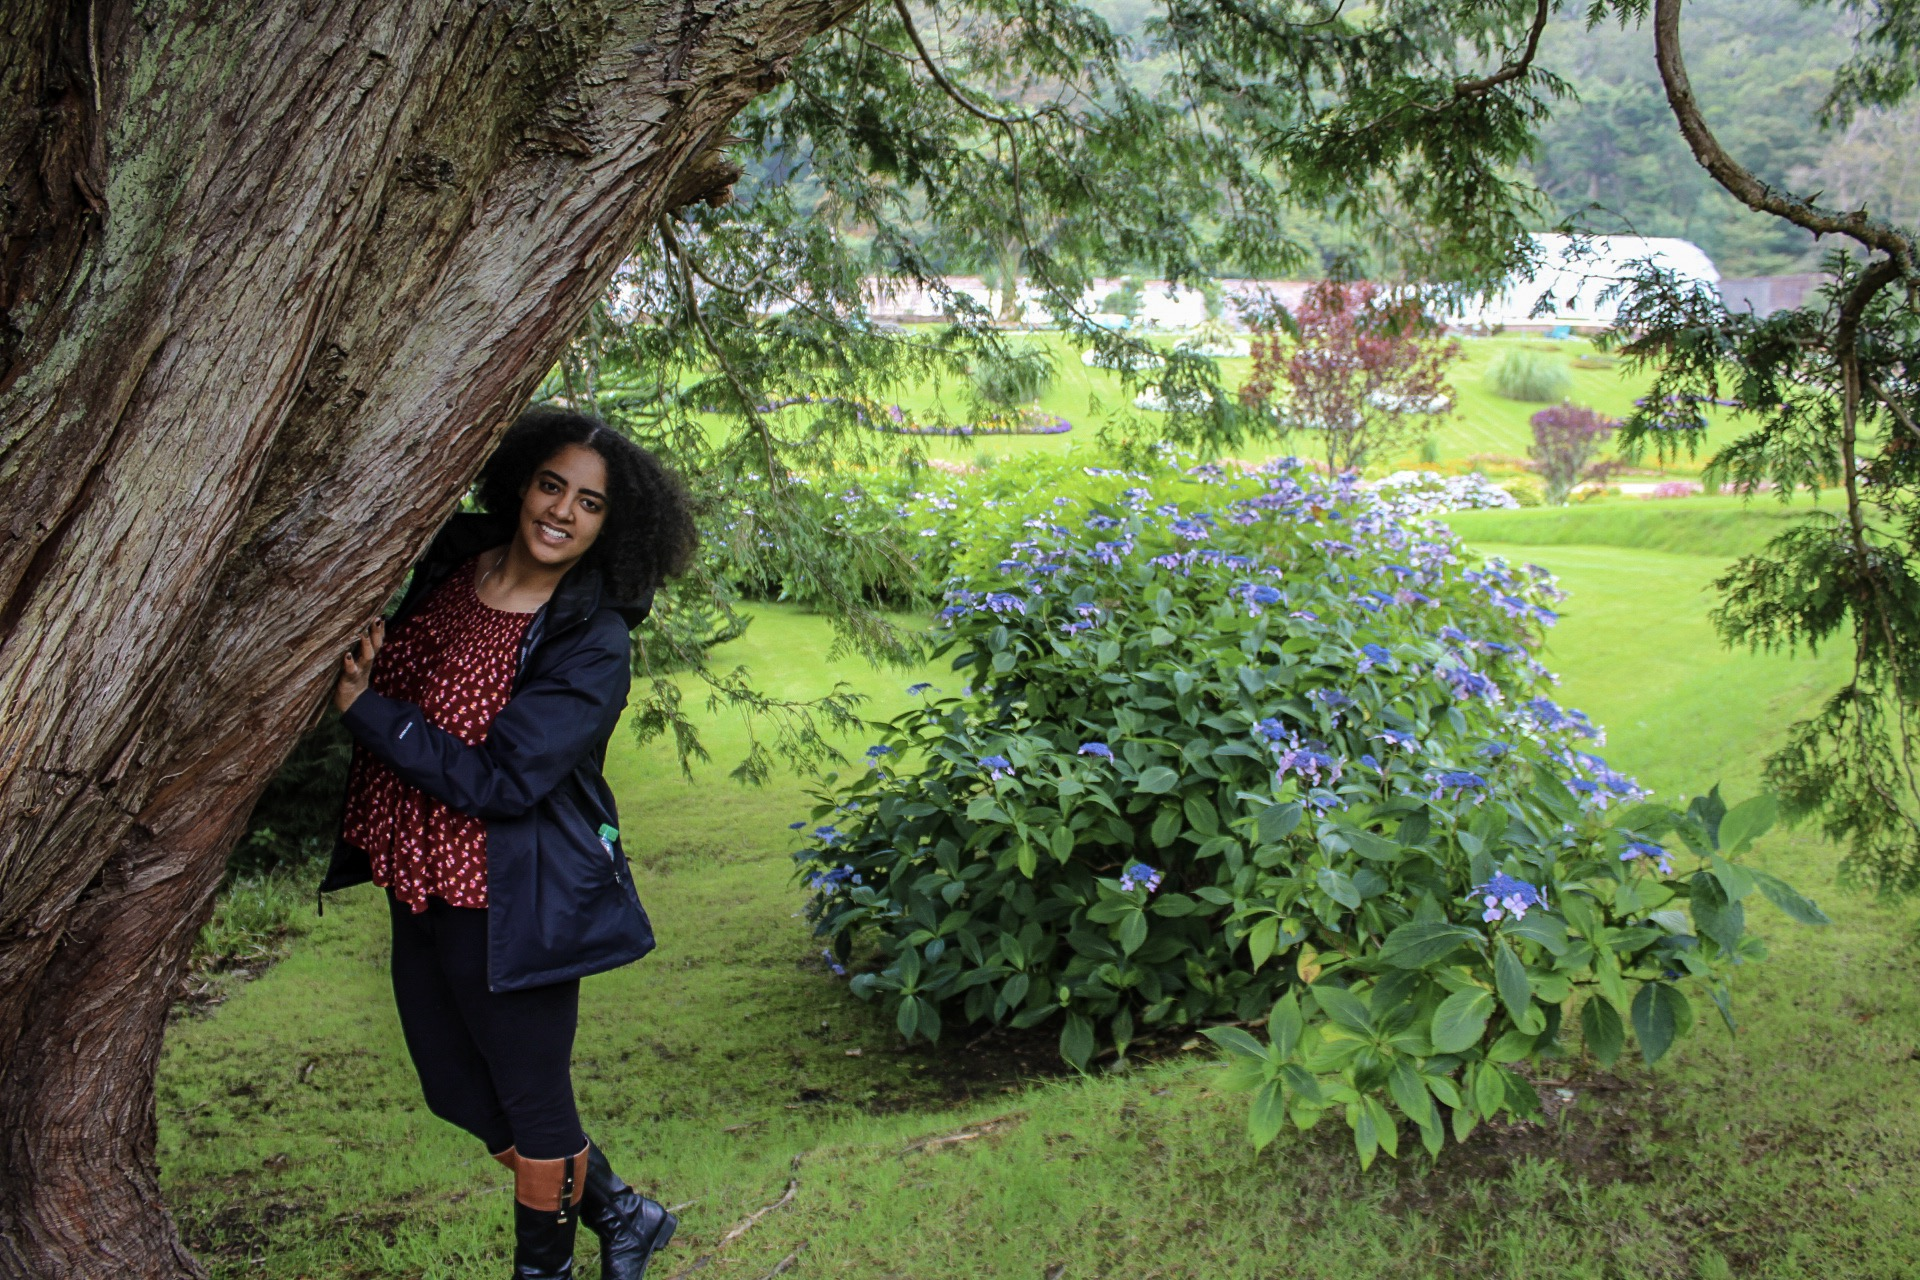 Enjoying frolicking around in the gardens of the Kylemore Abbey.